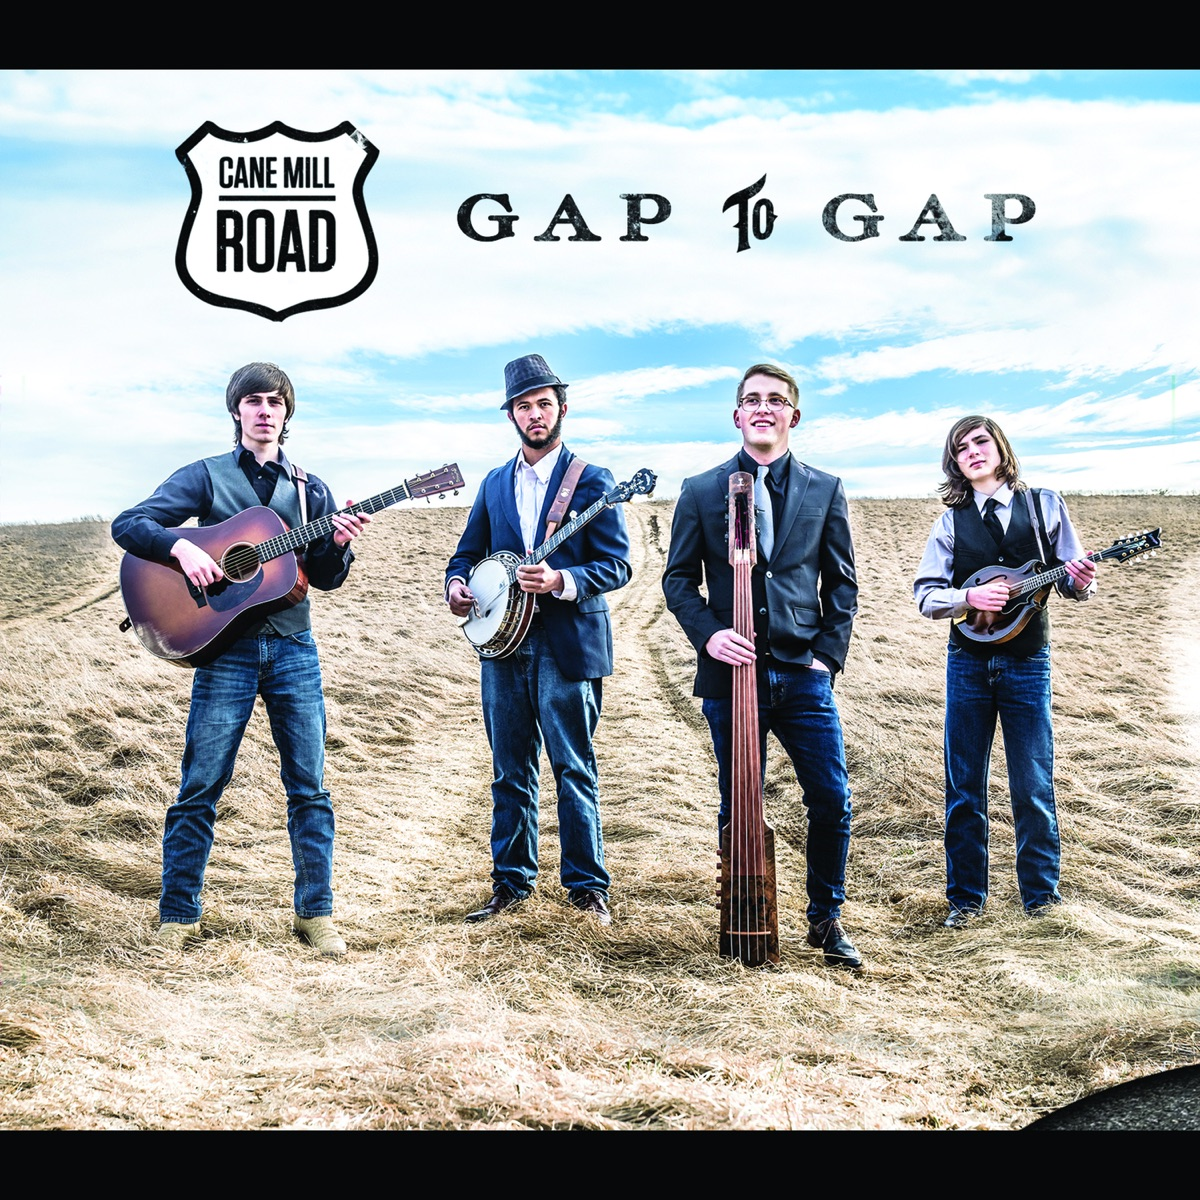 Gap to Gap feat Liam Purcell Eliot Smith Tray Wellington  Casey Lewis Cane Mill Road CD cover